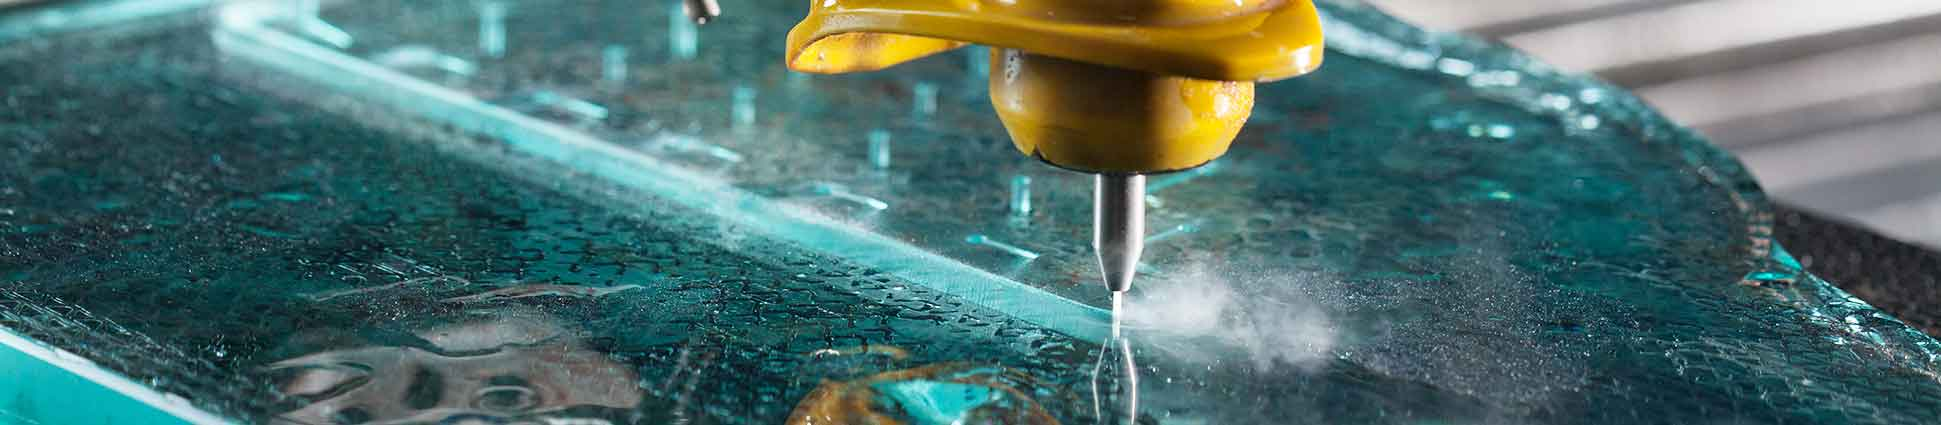 Close up of waterjet with yellow shield cutting in a straight line on blue glass material